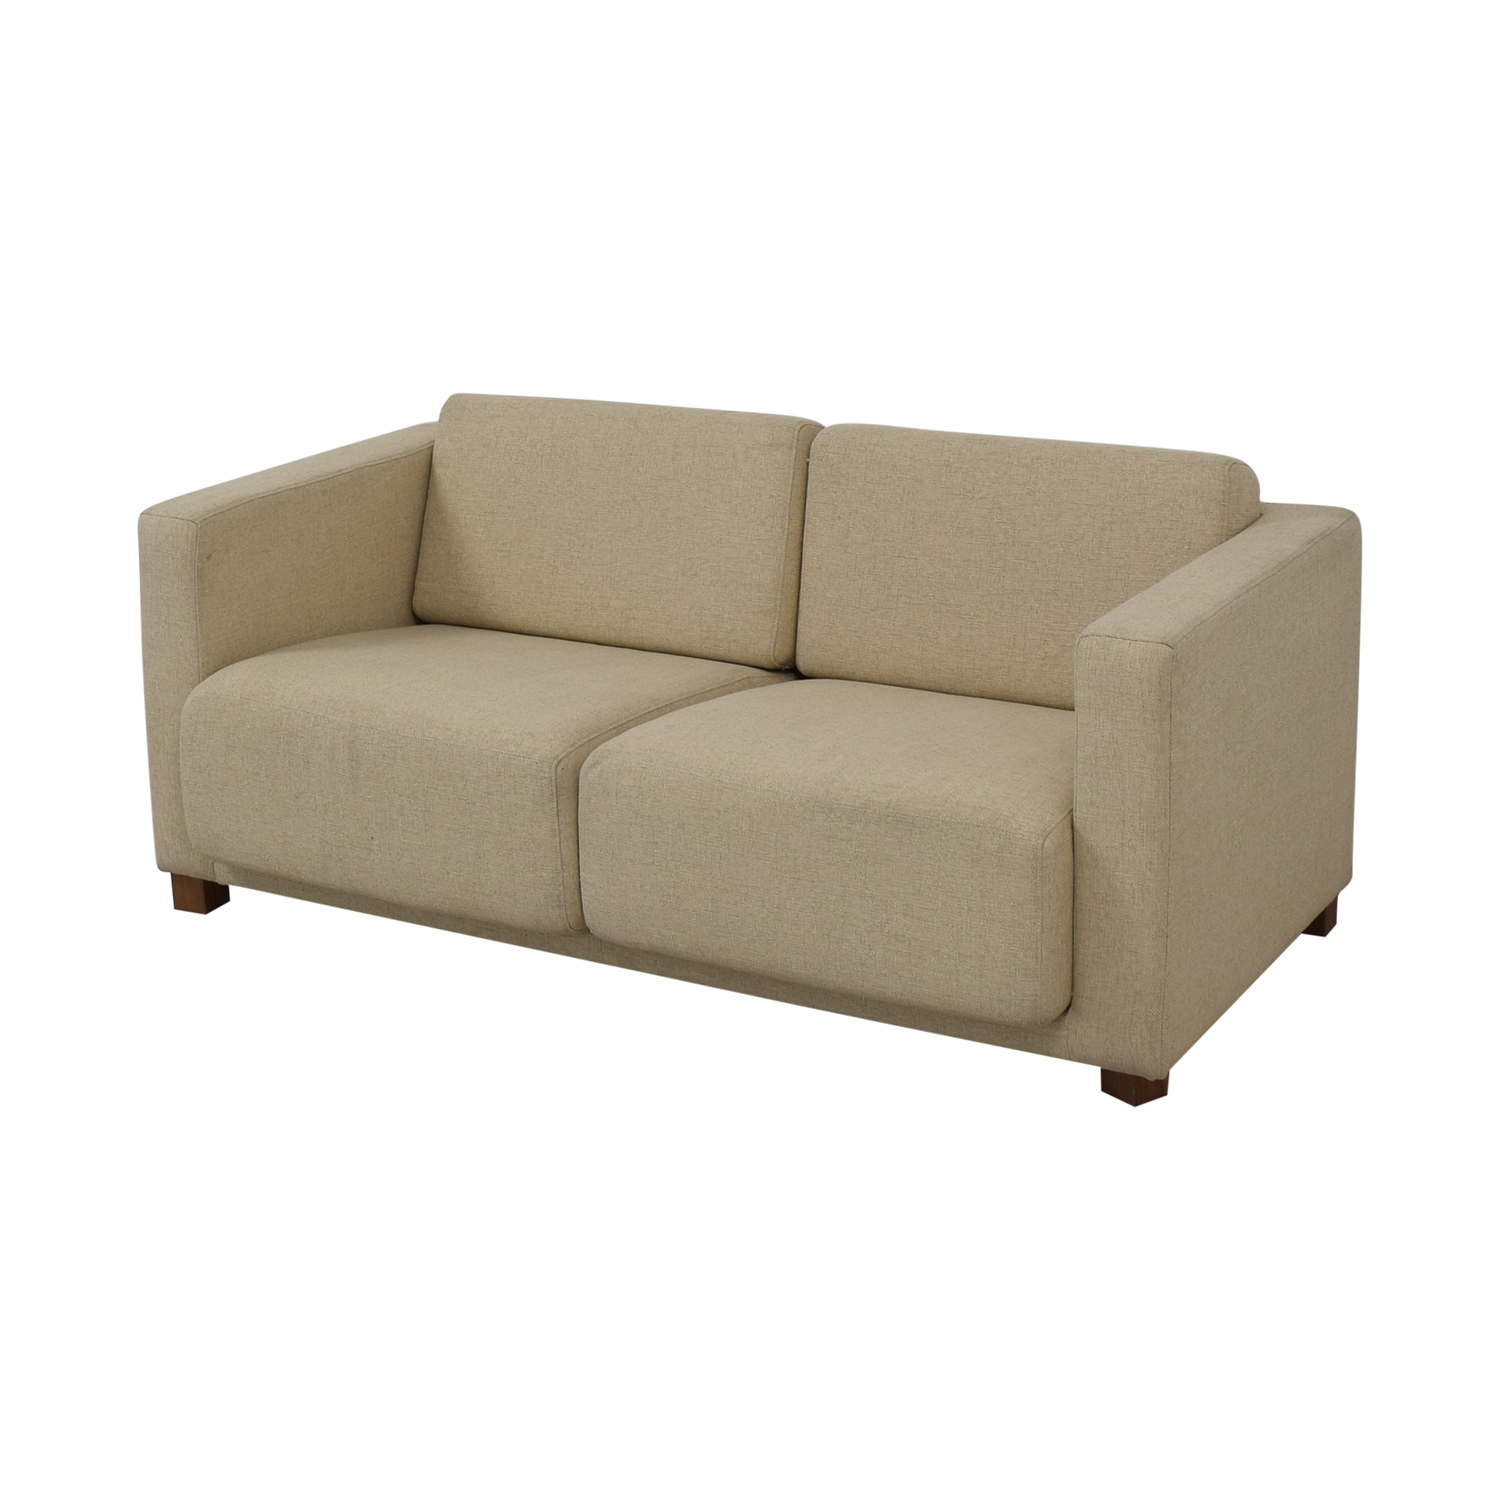 Control Brand Control Brand Sean Dix Standard Two Seater Sofa for sale